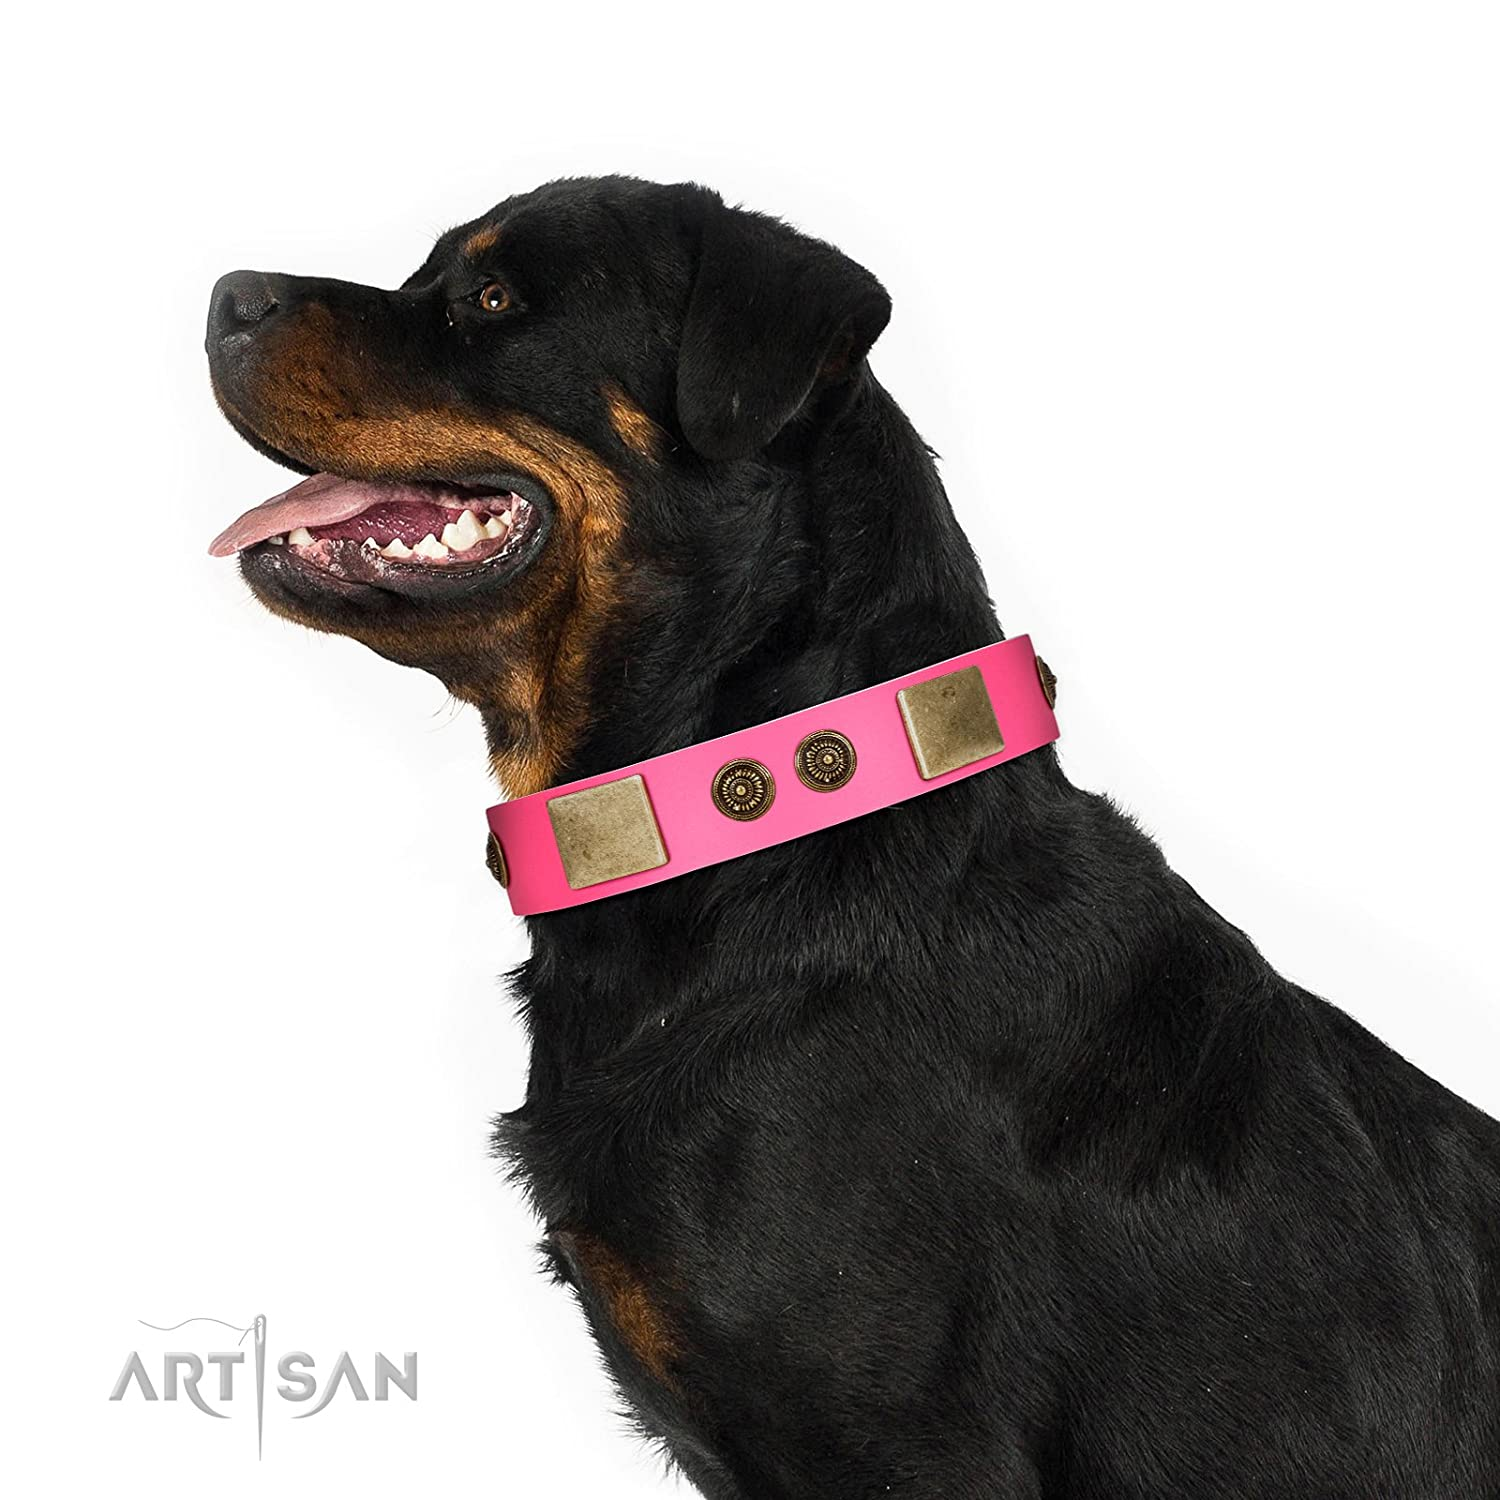 Fits for 24 inch (60cm) dog's neck size 24 inch FDT Artisan Queen's Whim Fancy Walking Pink Leather Dog Collar Adorned with Old Bronze-Like Plates and Studs 1 1 2 inch (40 mm) Wide